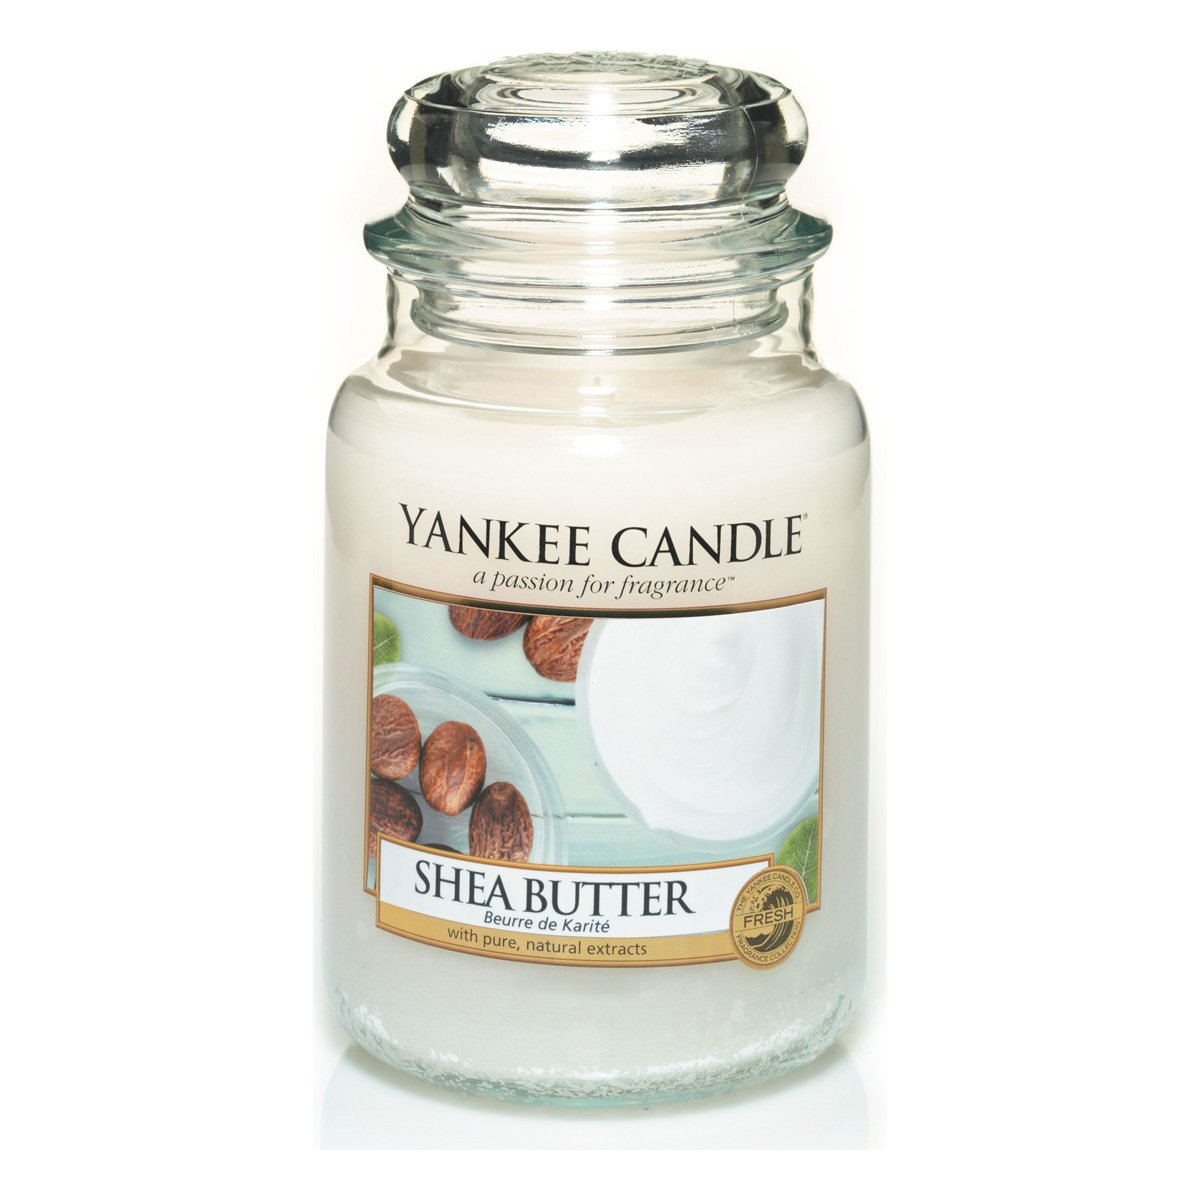 Yankee Candles Large Jar Candle - Shea Butter